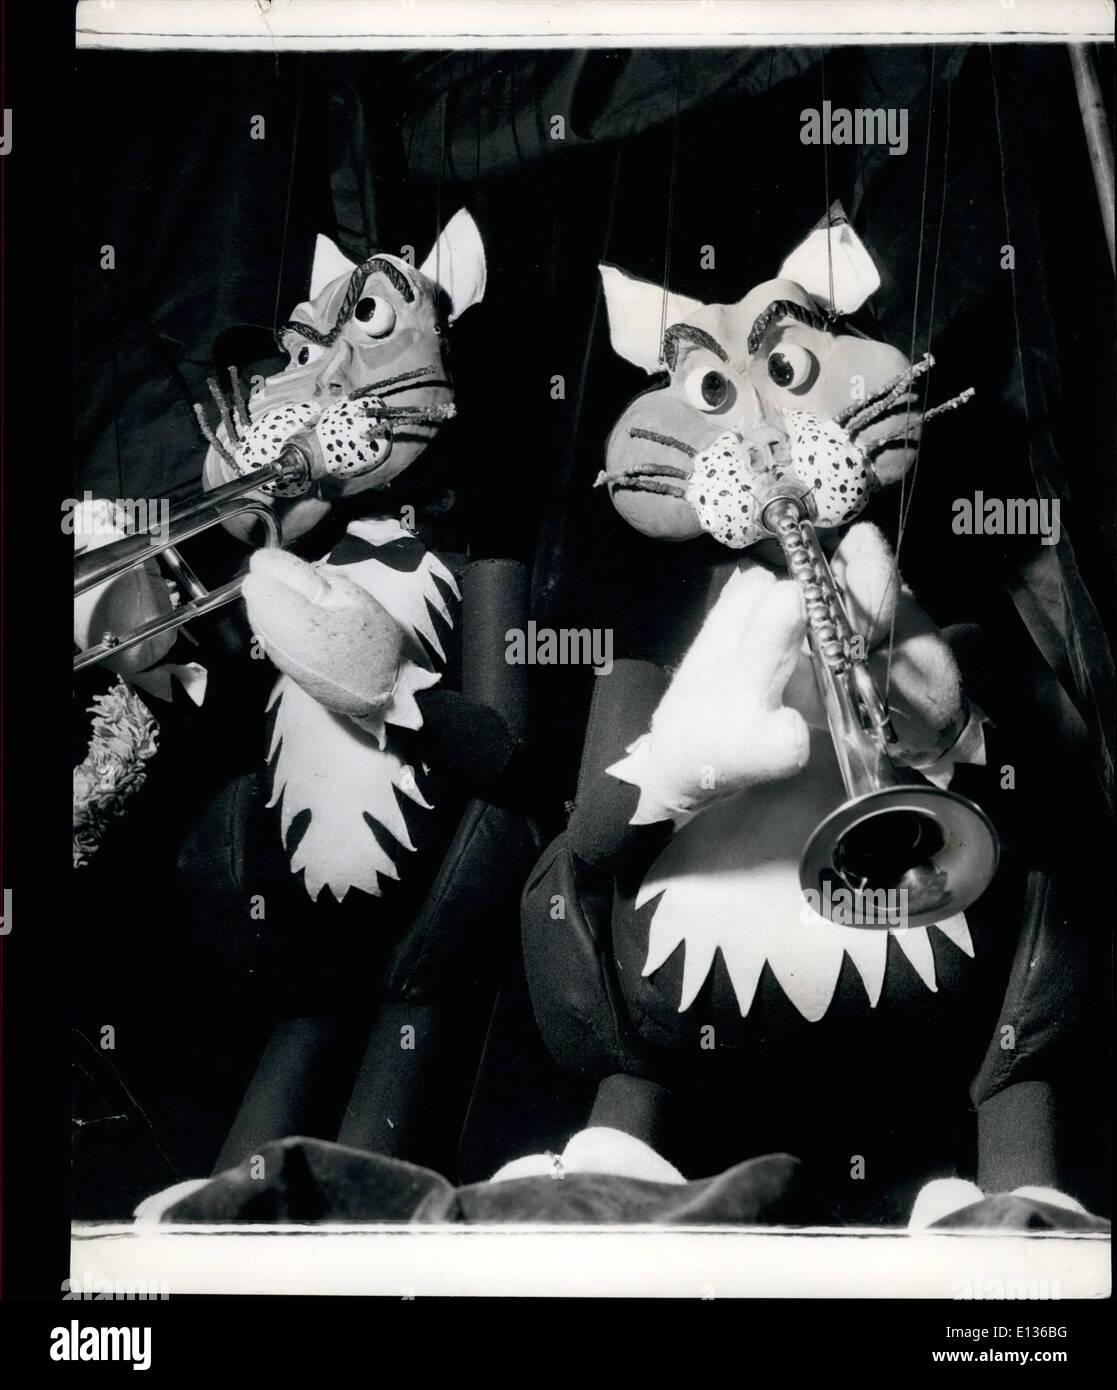 Feb. 28, 2012 - Musical Cats N Strings: Making their first appearance at the Palladium are two Australians who have - Stock Image